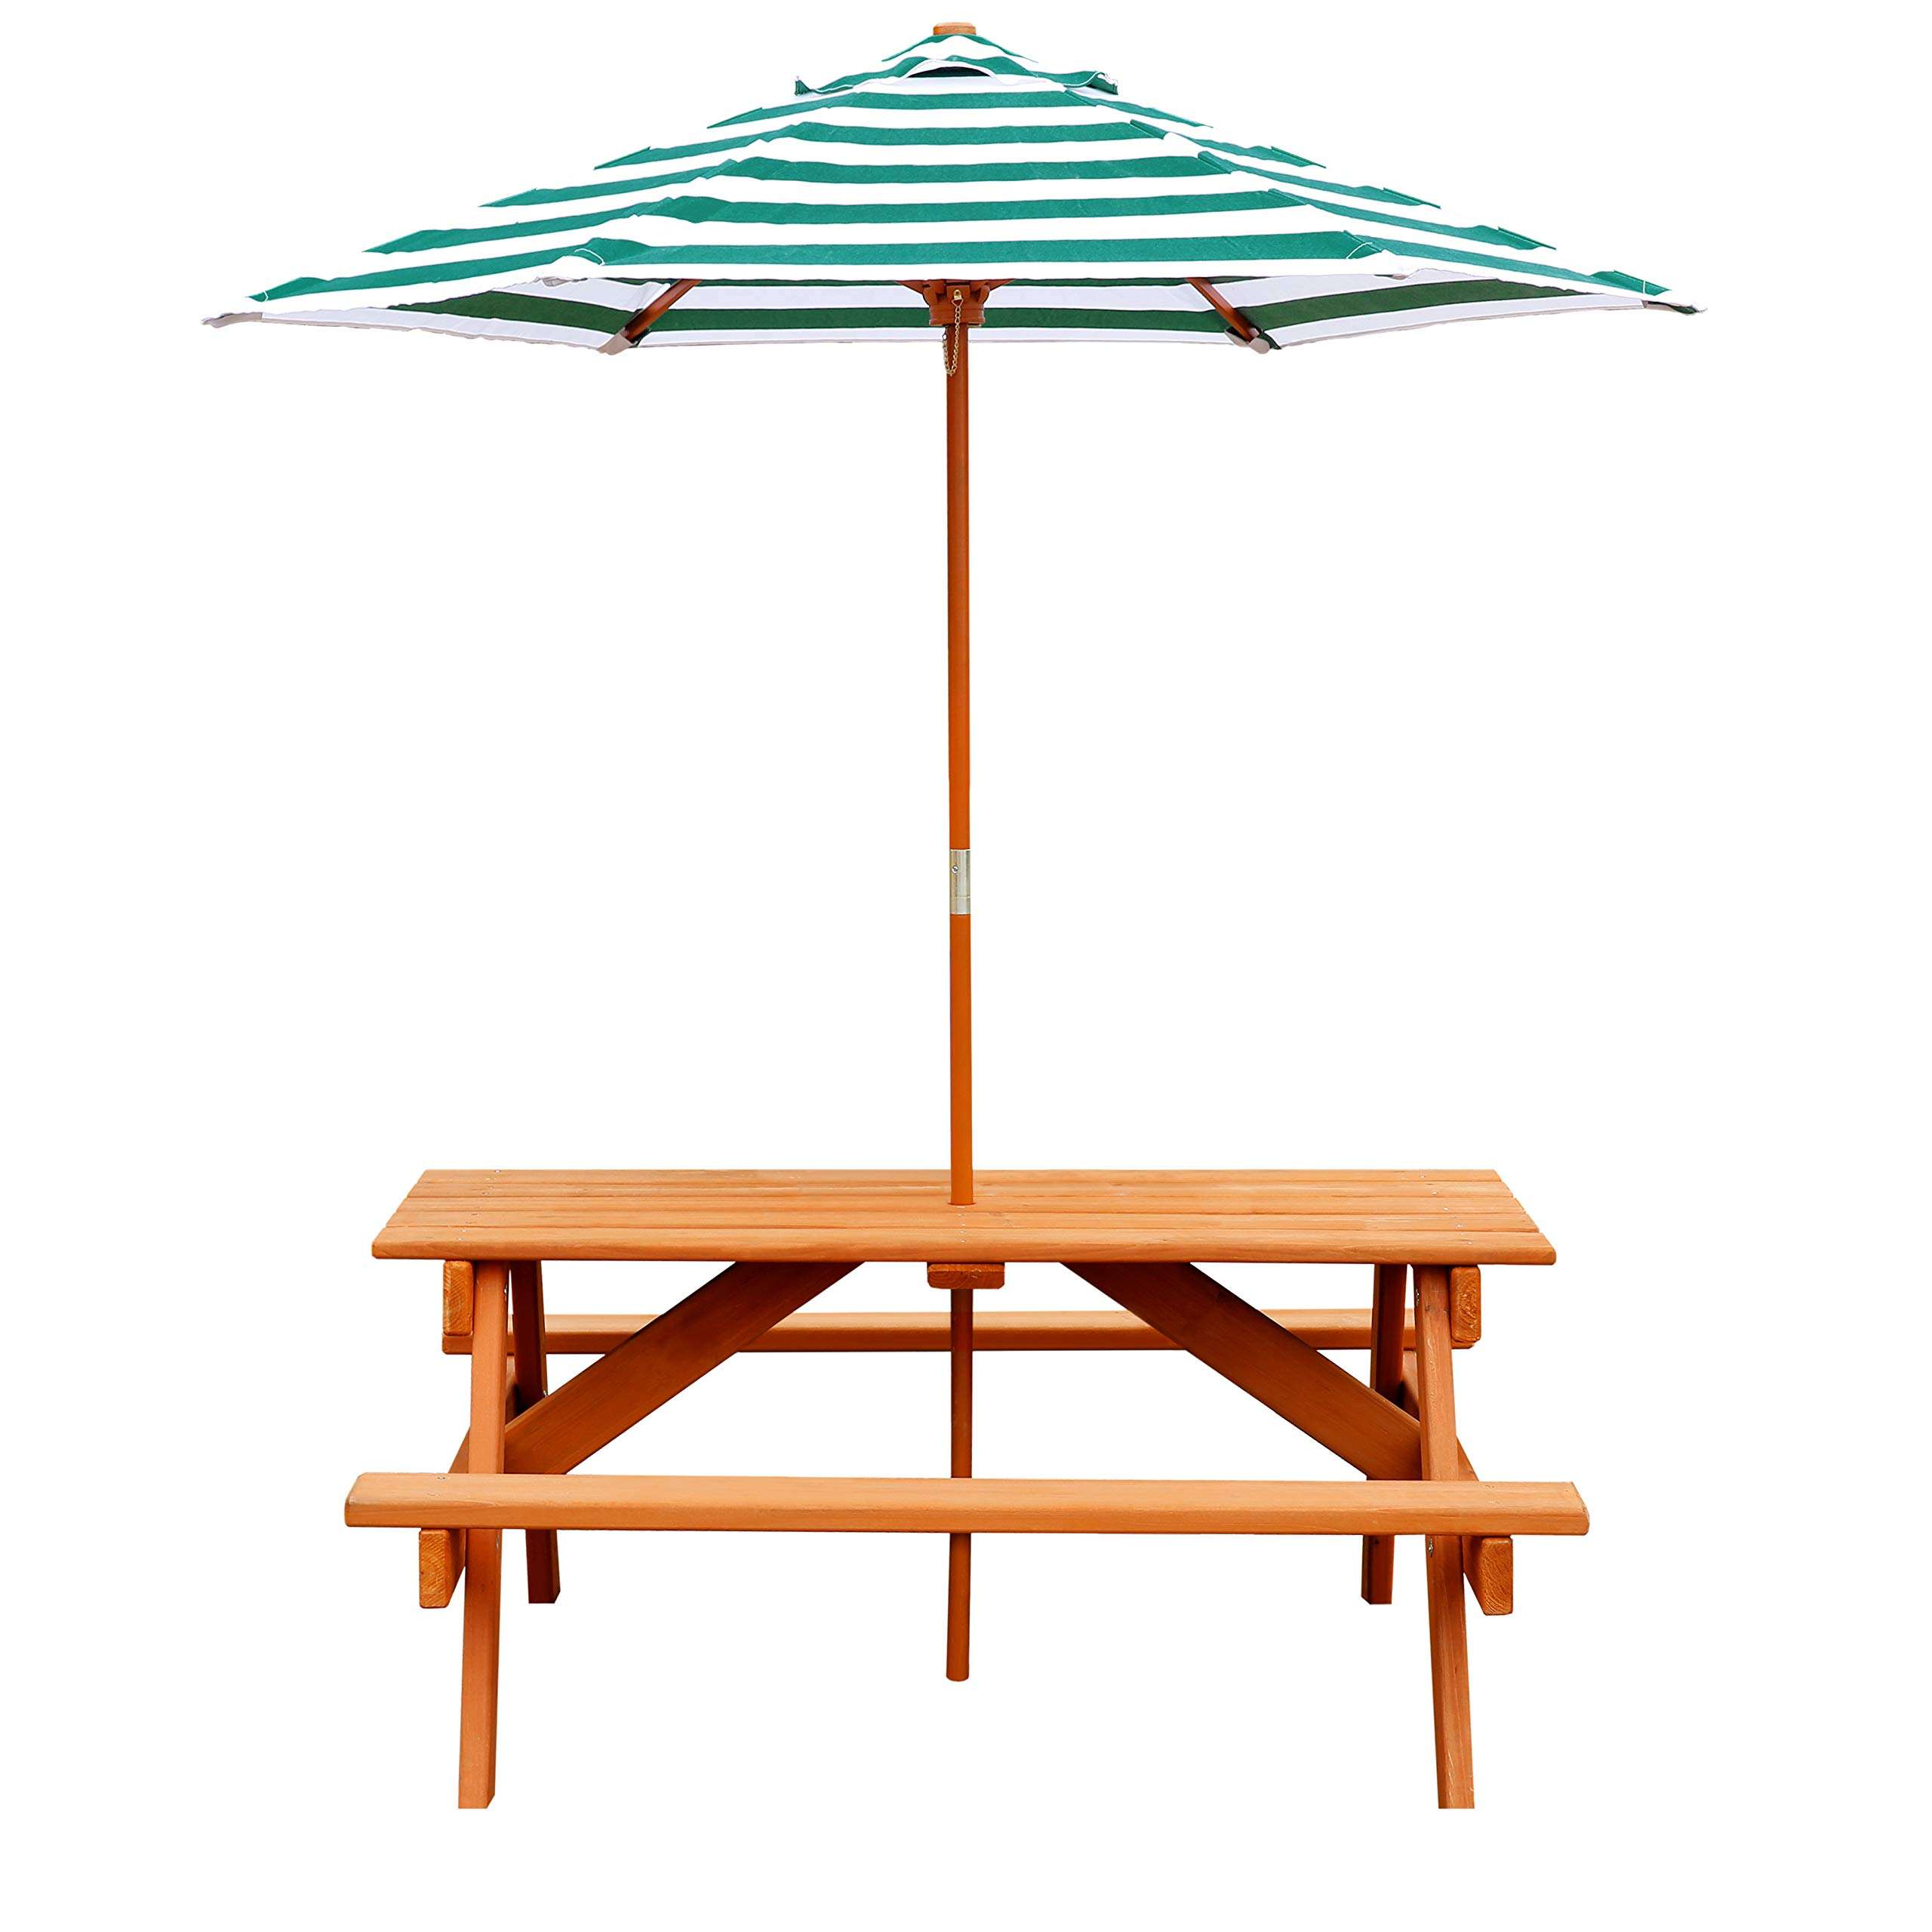 Jur_Global Wooden Children's Picnic Table with Umbrella